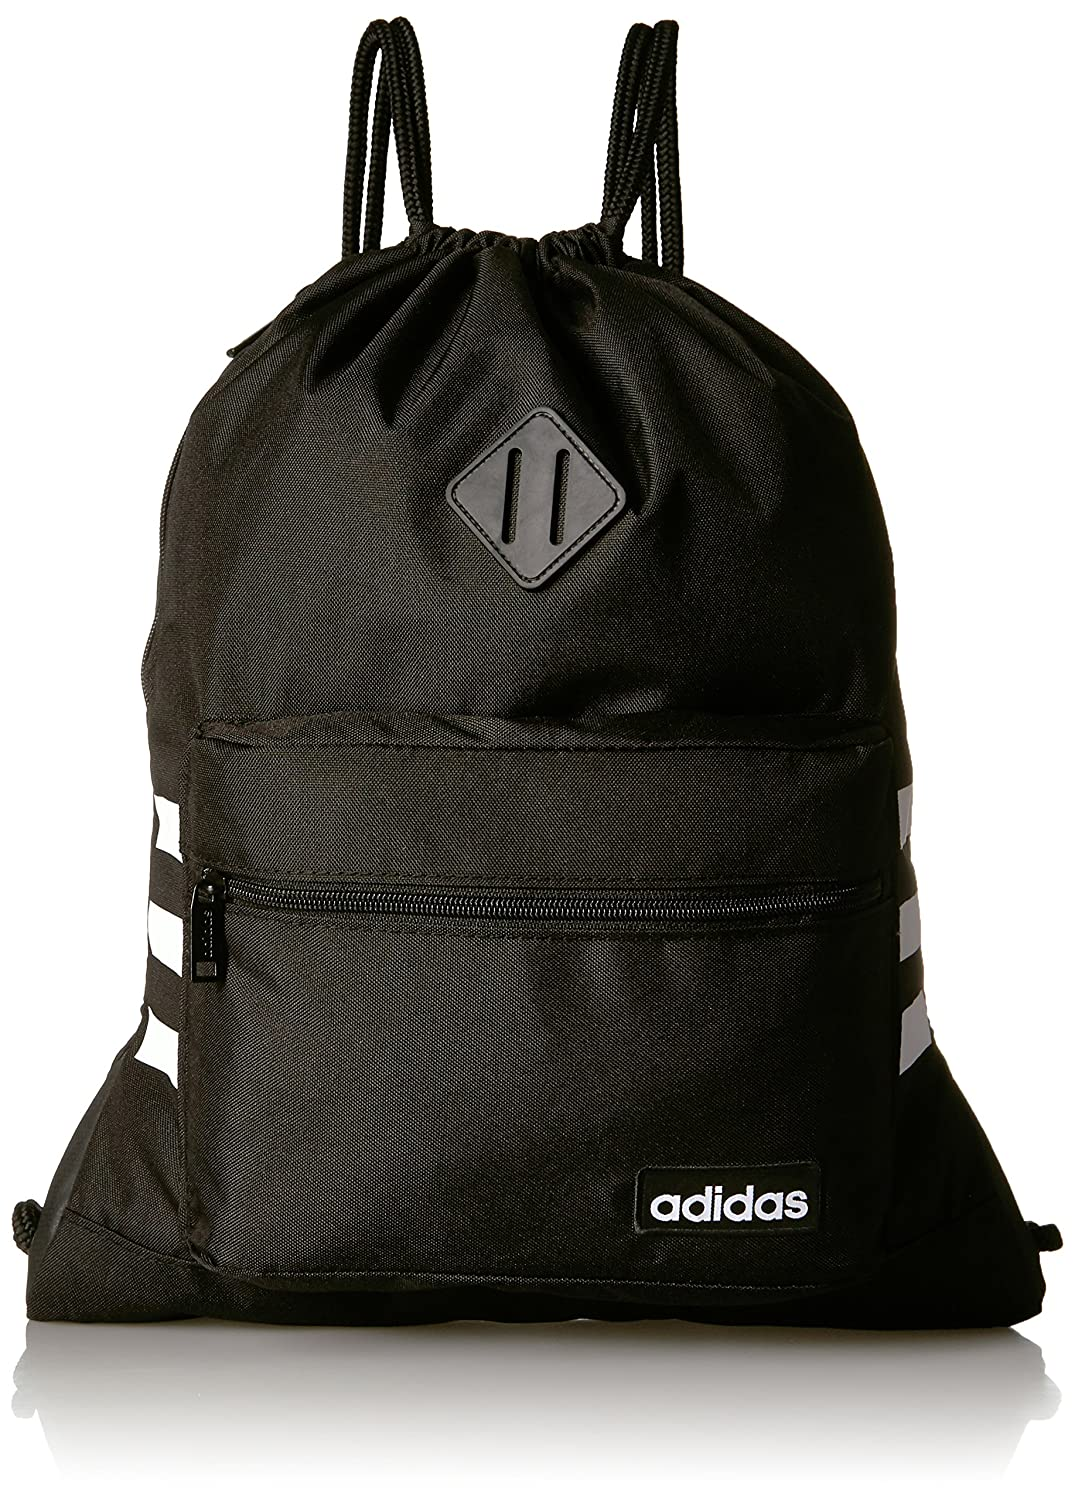 d4539eb78c99 Amazon.com  adidas Classic 3S Sackpack